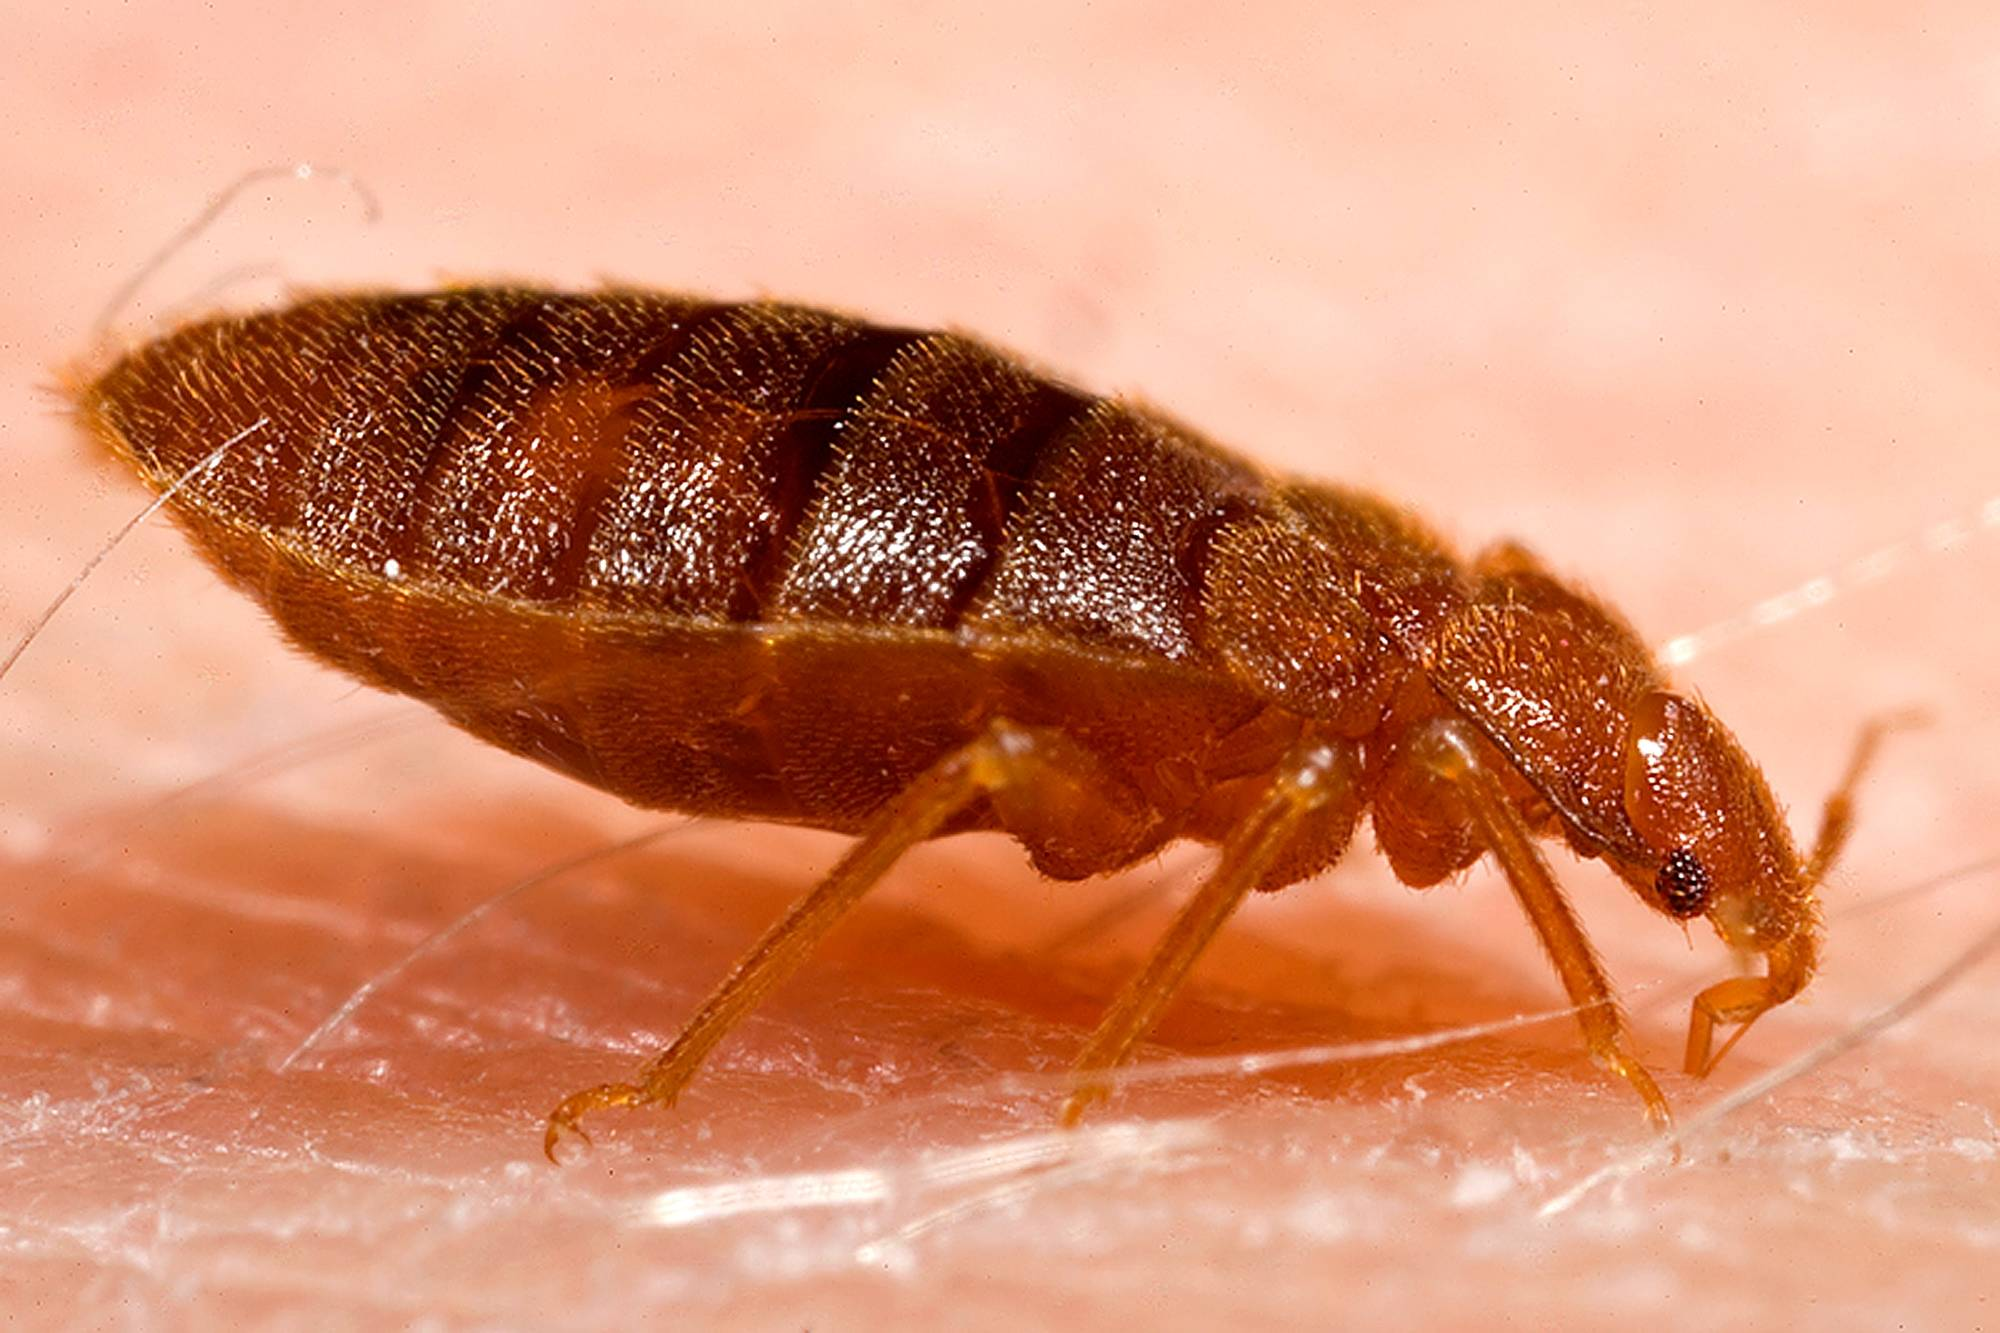 Entomologists say having a clean room does not prevent bed bugs, which can each lay up to five eggs in one day. (Wikimedia Commons)